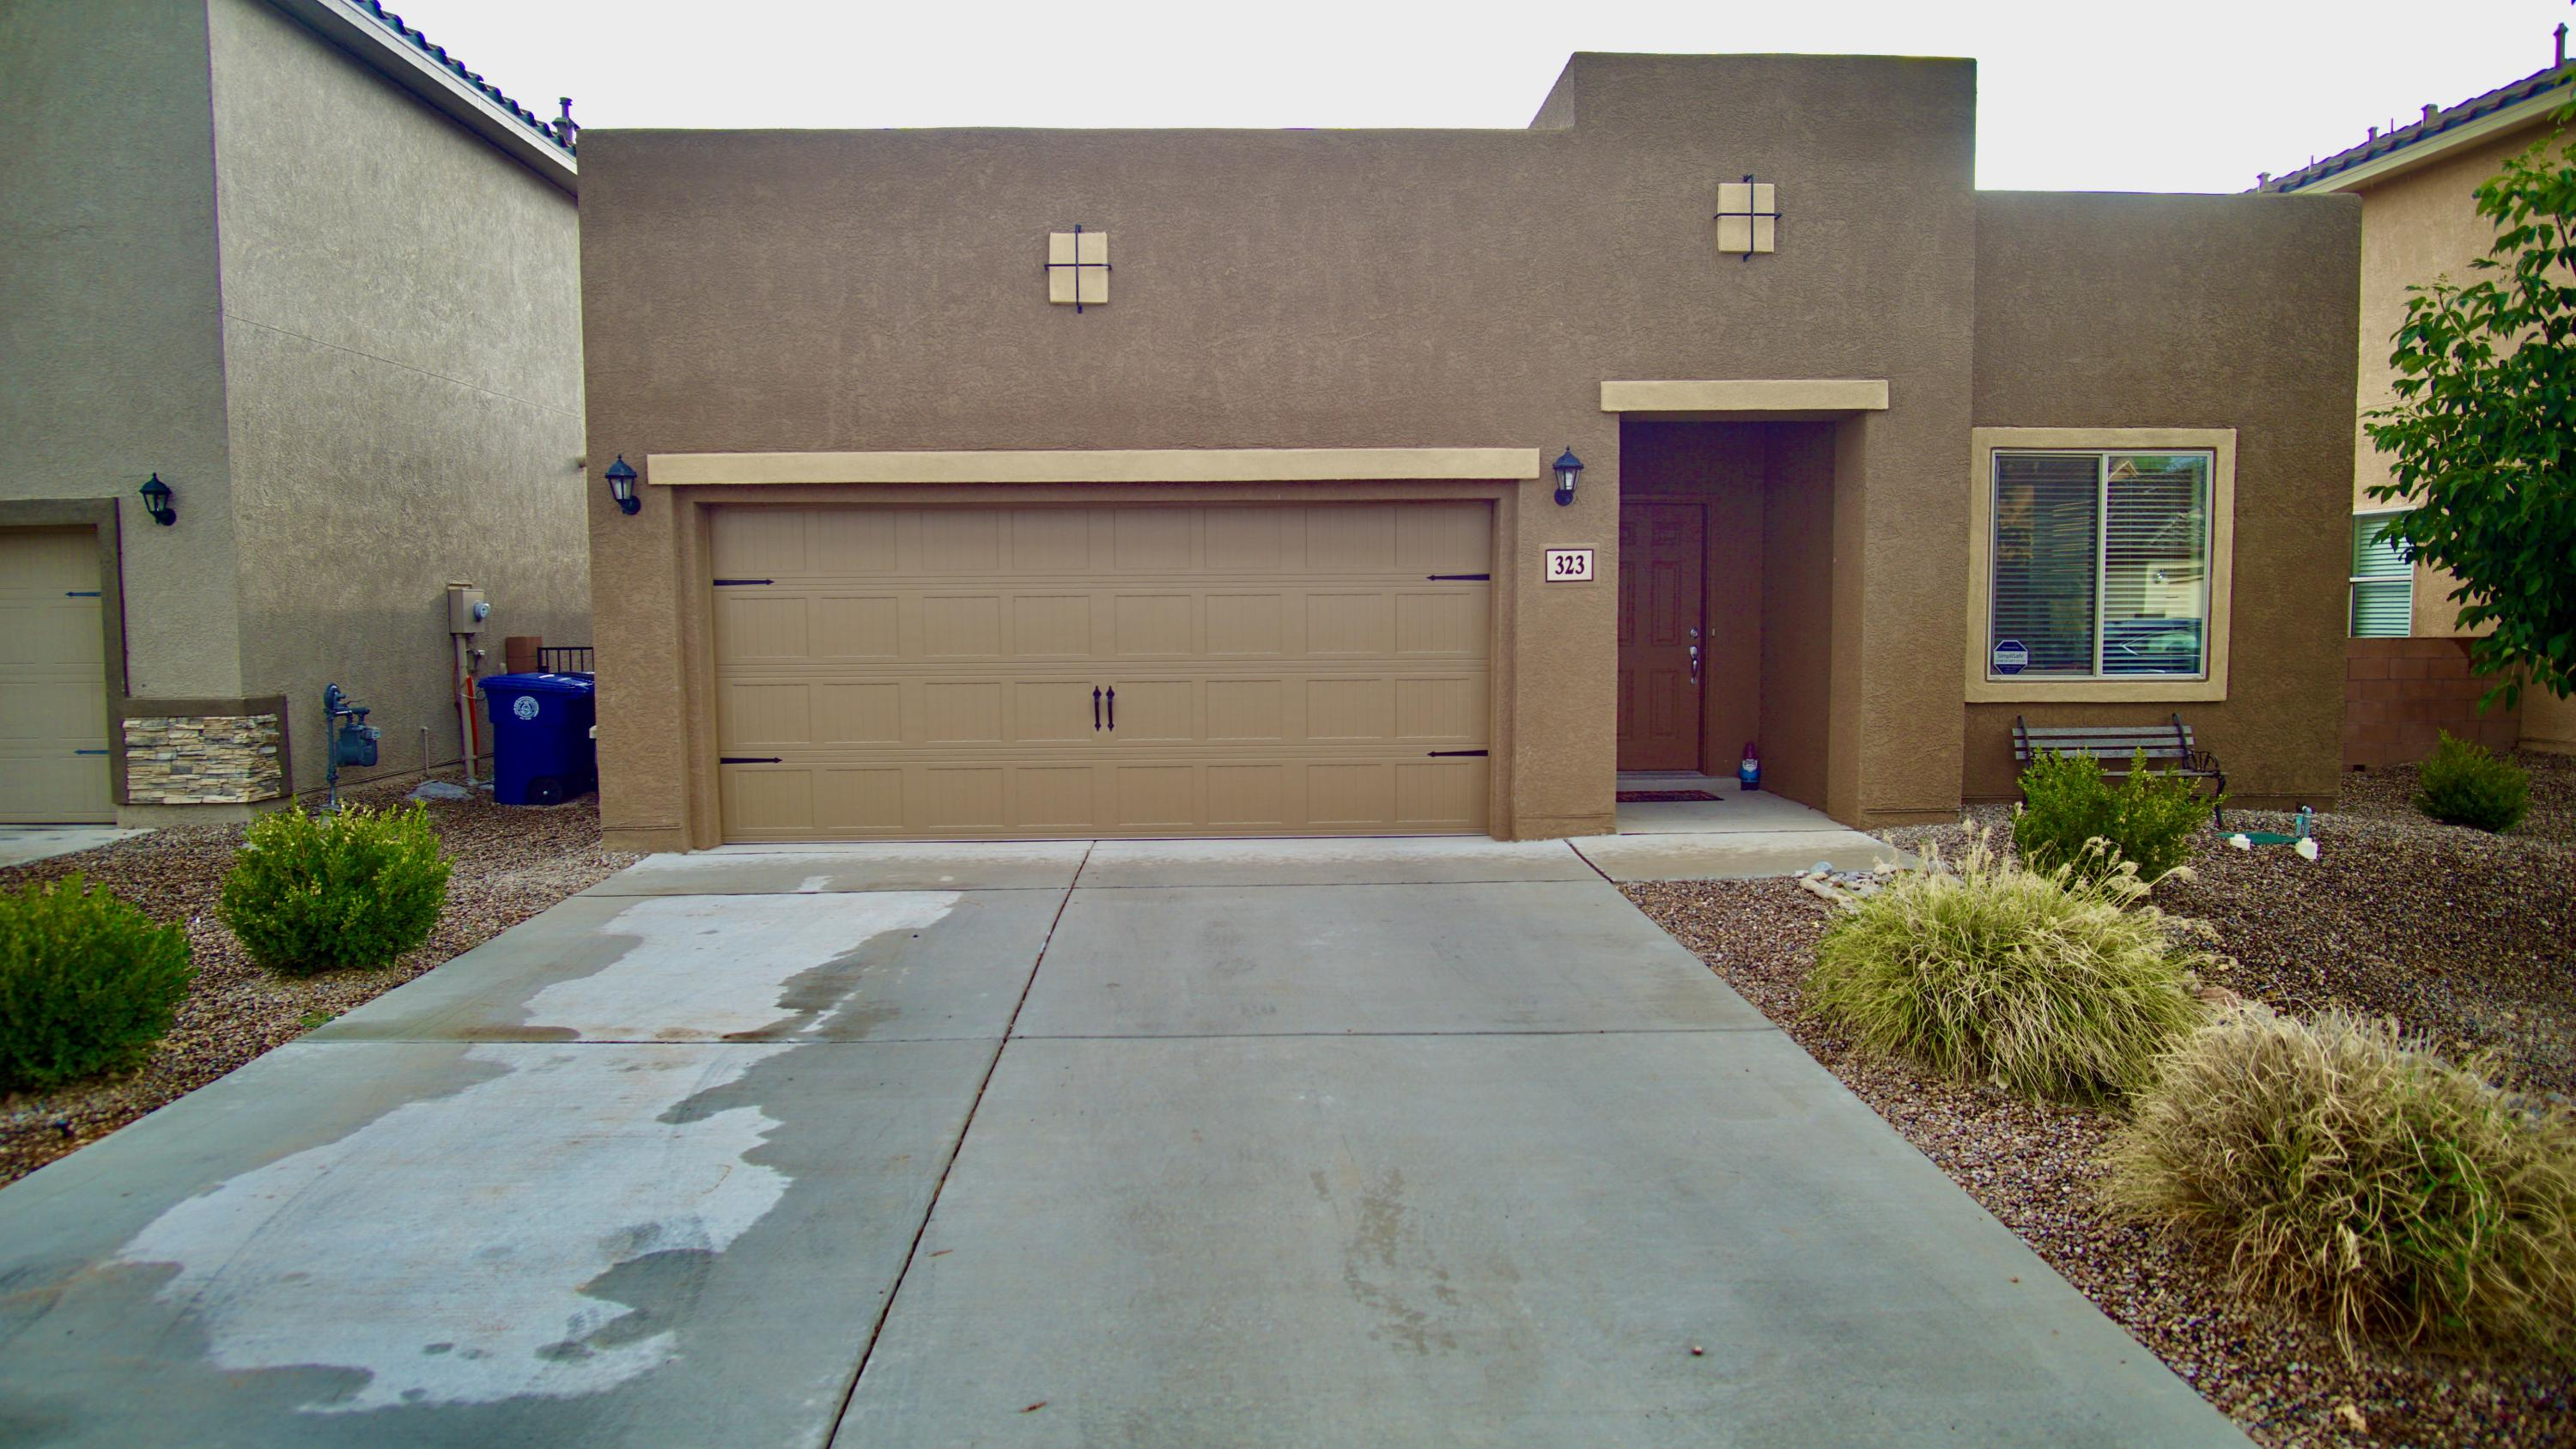 Come and see this wonderful newer home that is at the walking distance to the Bosque and Rio Grande in a private gated community! Wonderful open floor plan with stainless steel appliances, granite counter tops, high ceilings and so much more updates that come with a newer home! Large kitchen that has a bar top, pantry and  large dining room! Great sized owners suite that is separate from the two secondary bedrooms and has separate tub and shower, dual vanity and walk in closet completes this great suite! Large hall closet and laundry room just adds to the useful space that this home has! Covered back patio and blank canvass backyard will add to the amazing footprint of your home! Come and see this private house today!